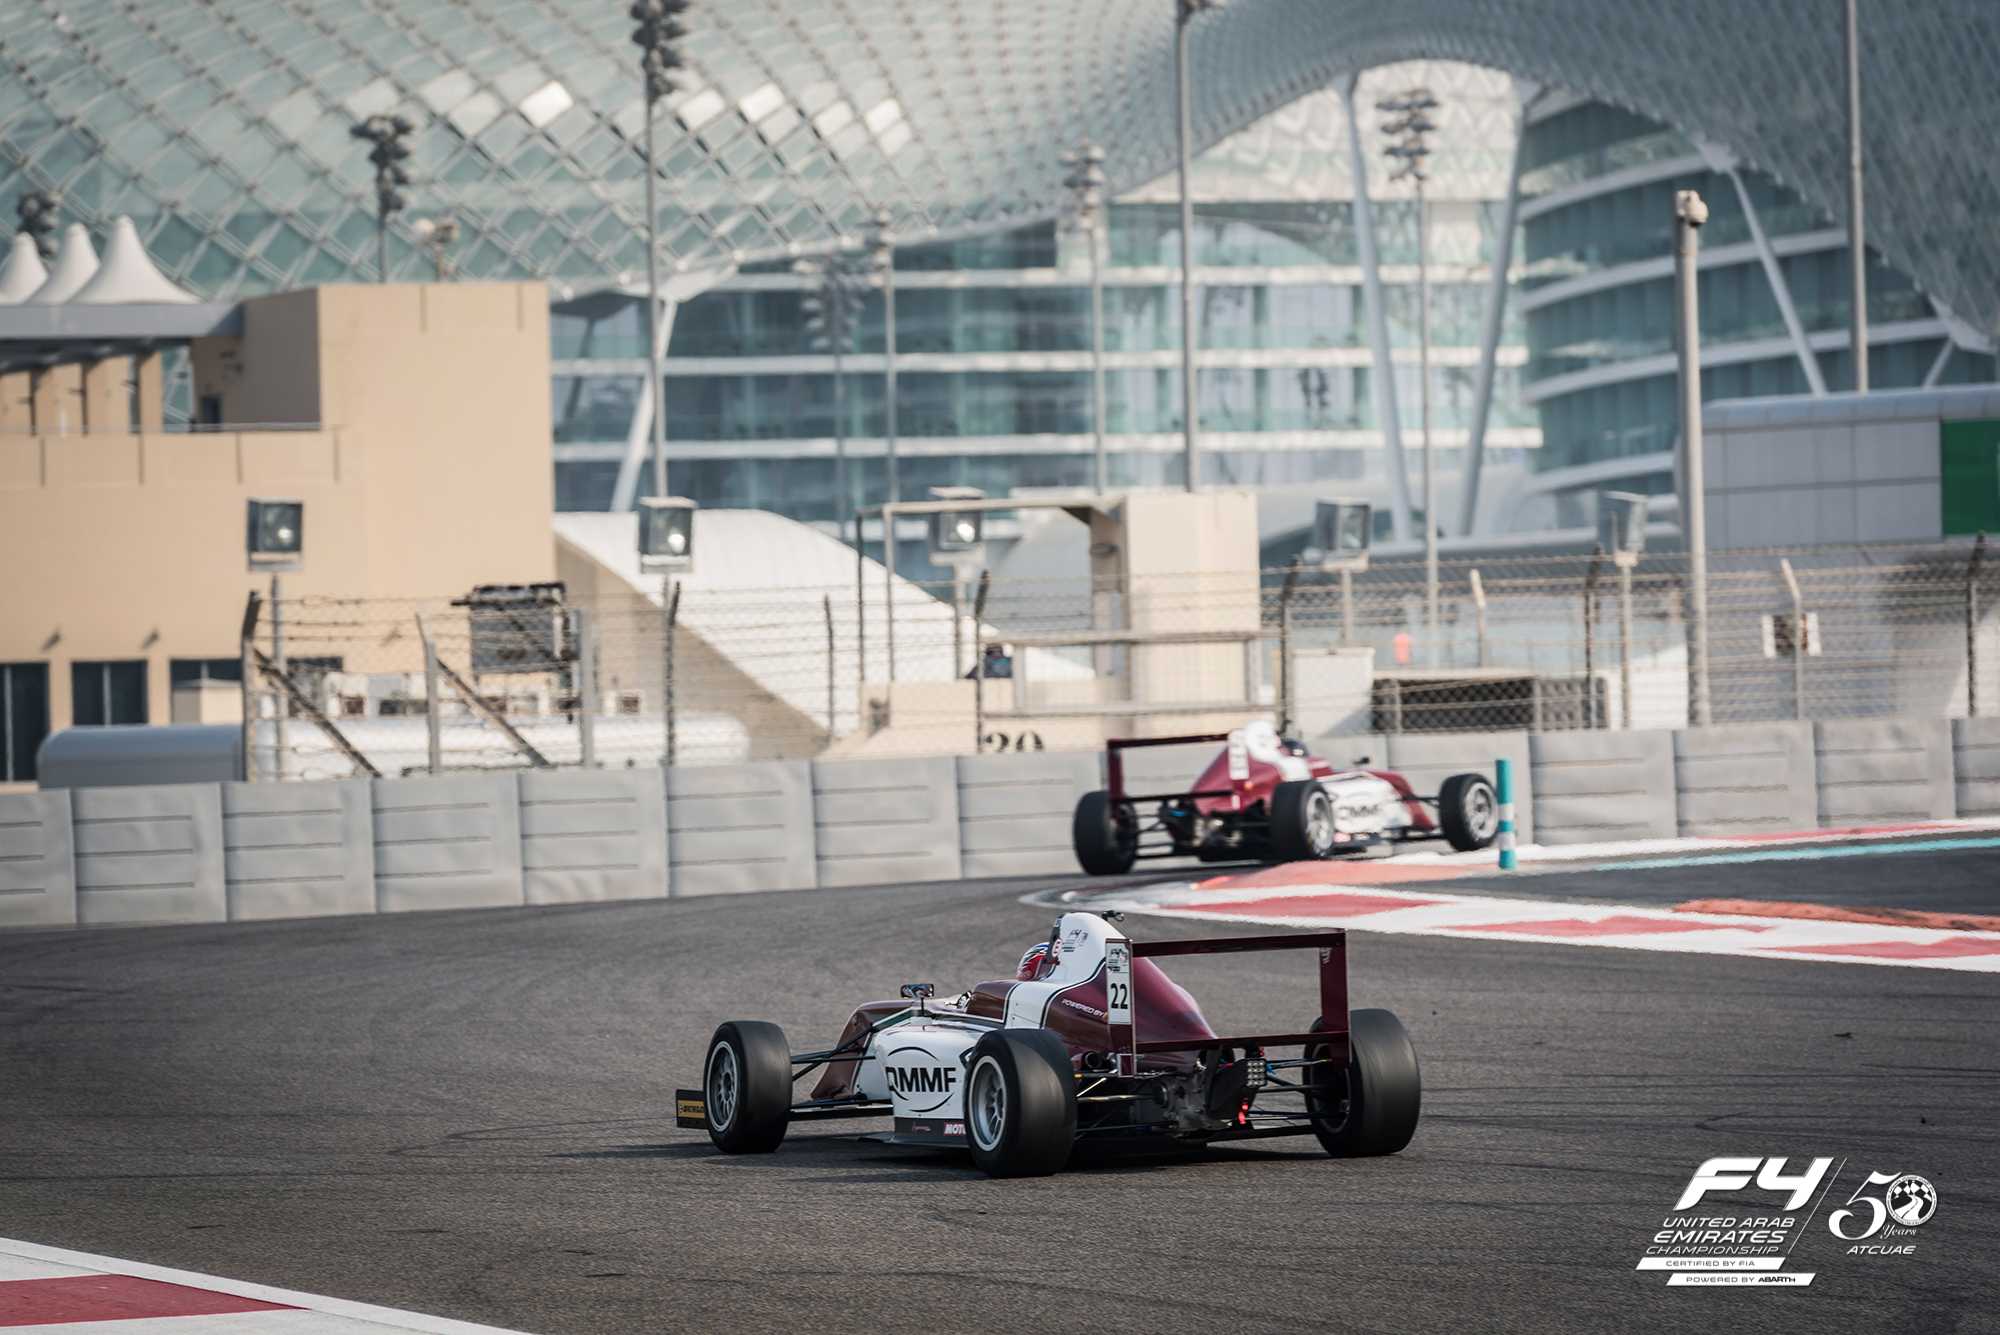 2016 16 12   F4 Second Round   Abu Dhabi 8 1